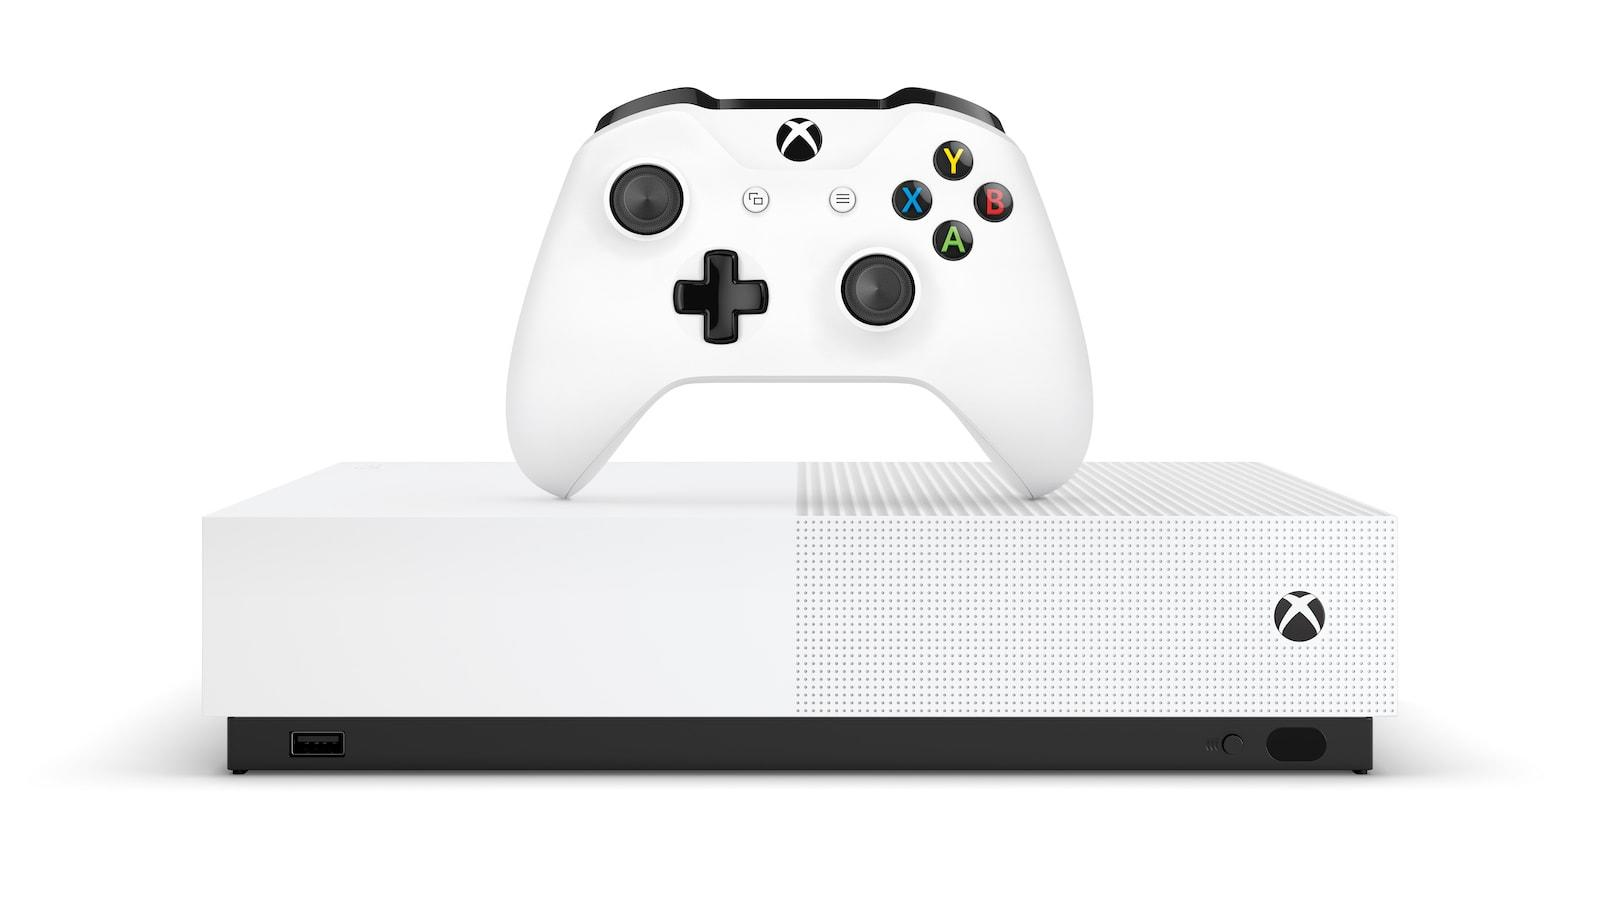 The Disc Free Xbox One S Hits Stores On May 7th For 250 Engadget